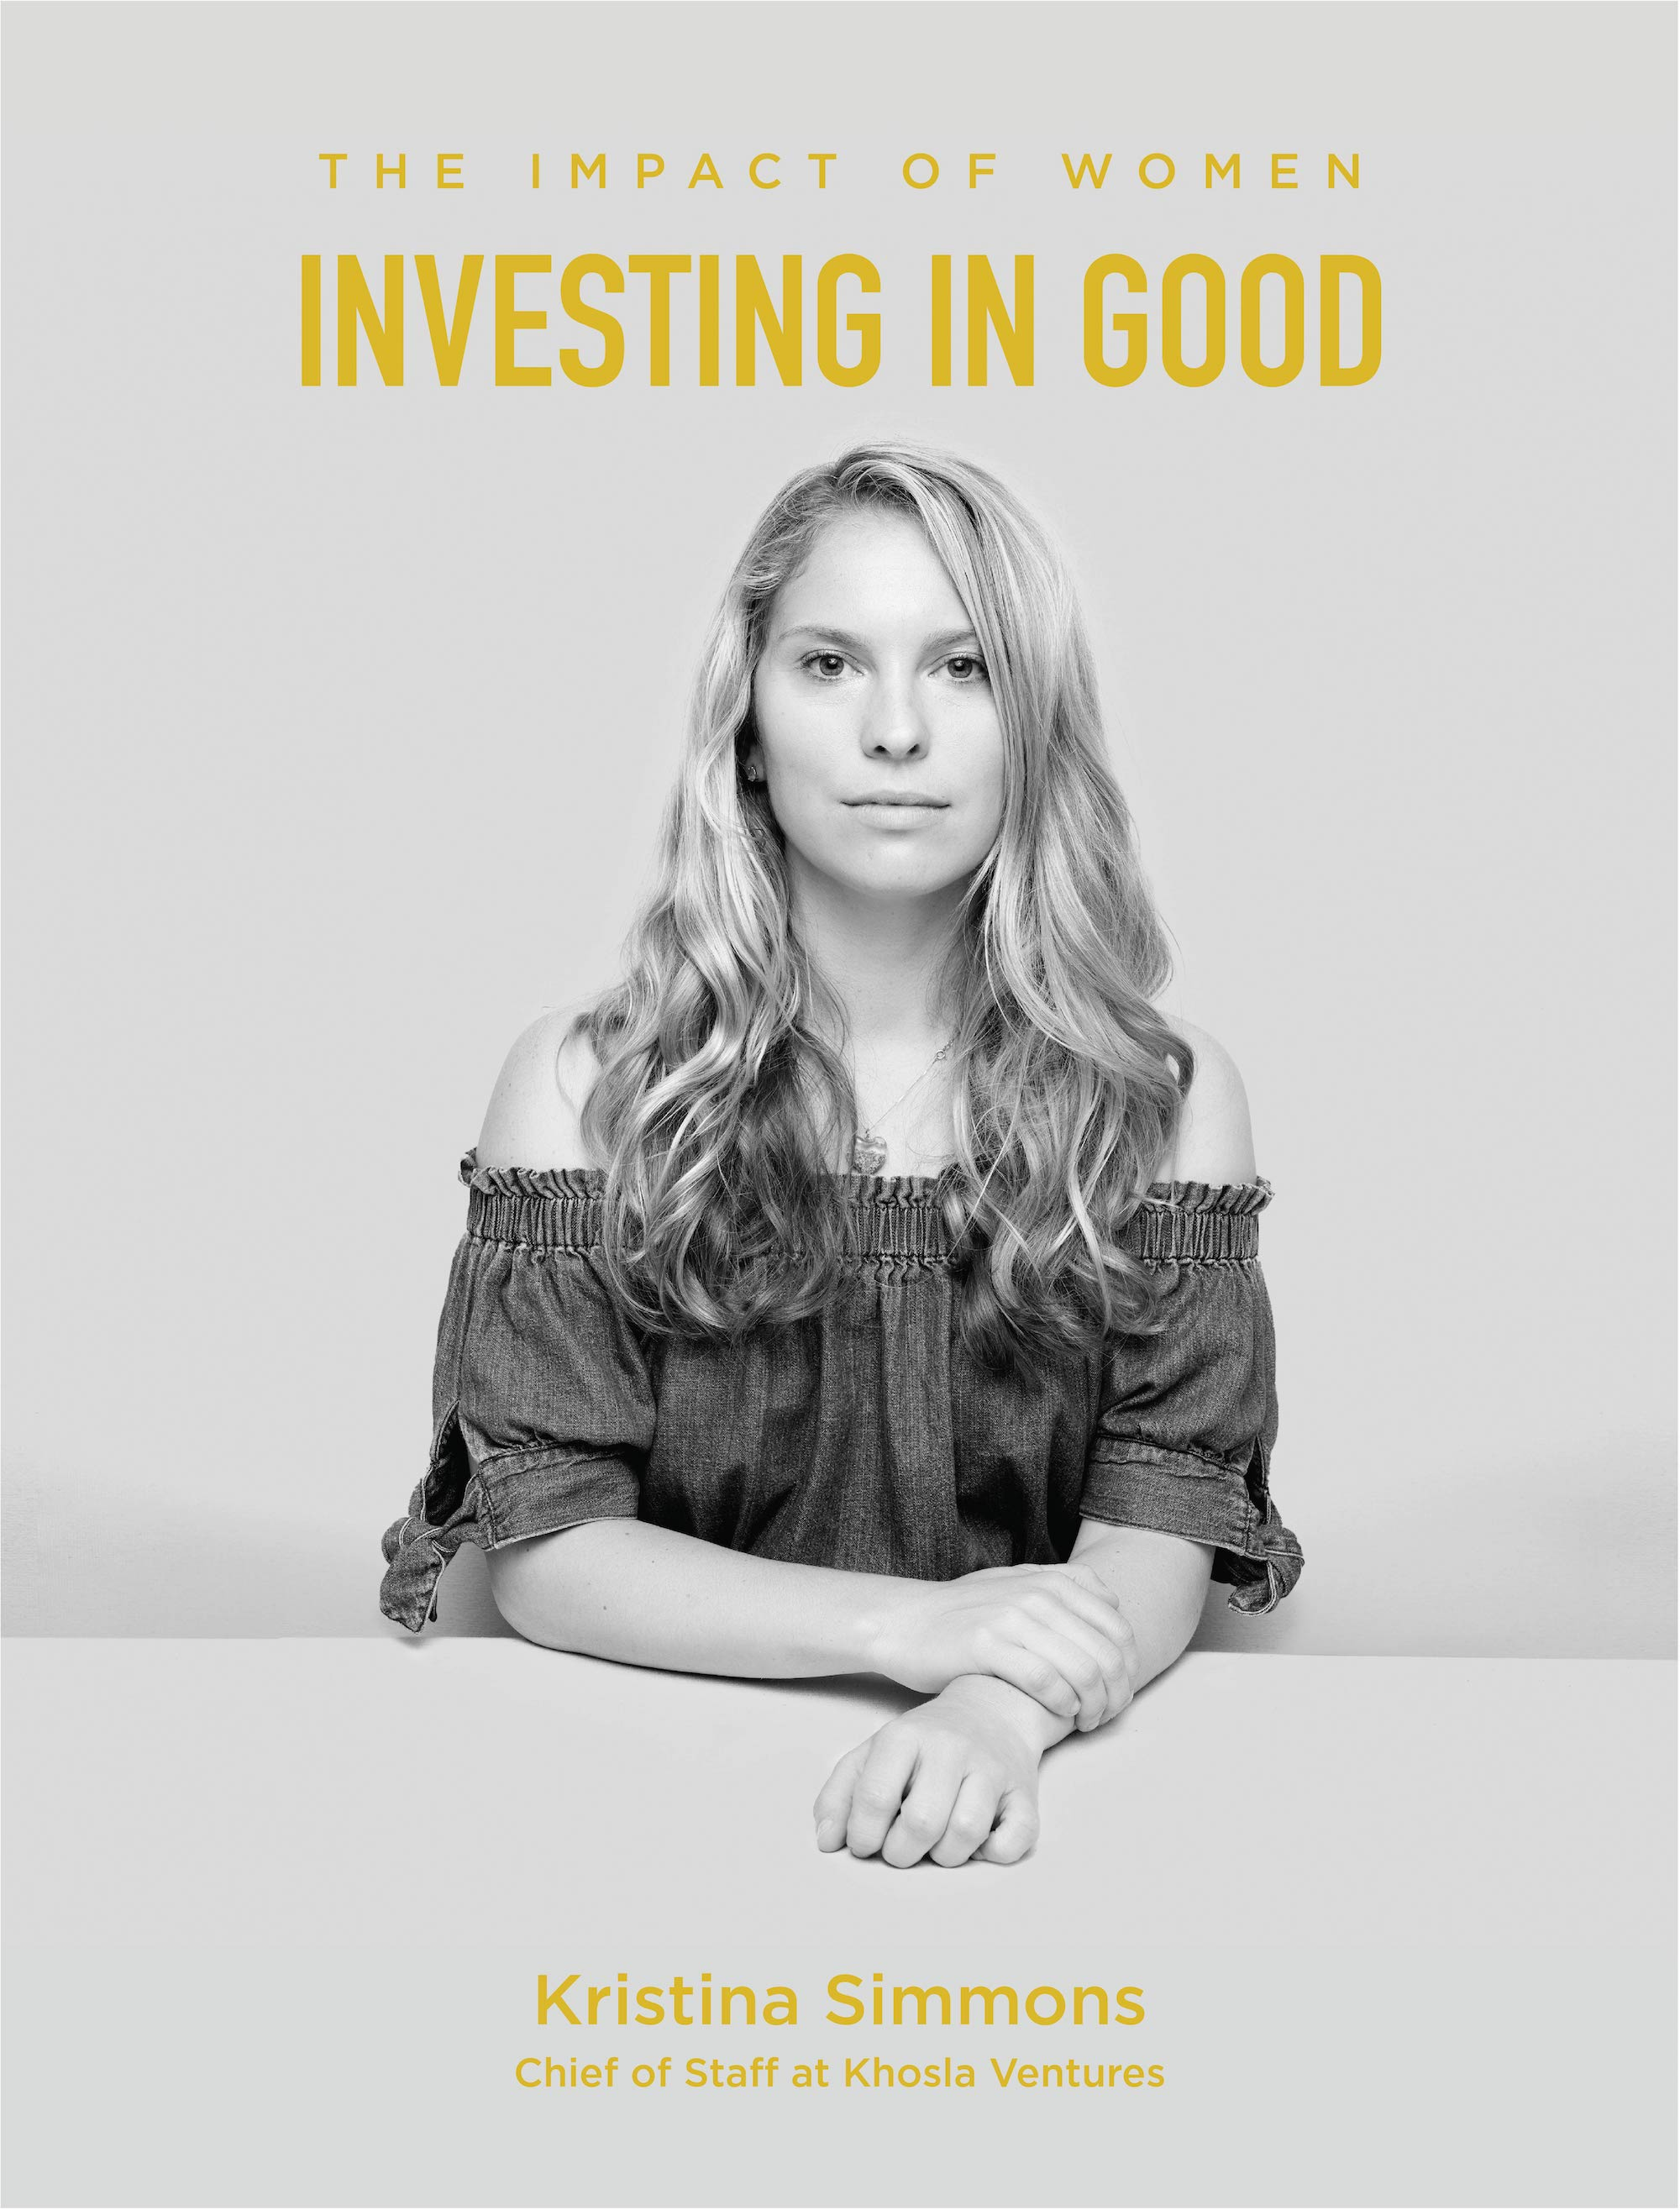 Kristina Simmons is Investing in Good